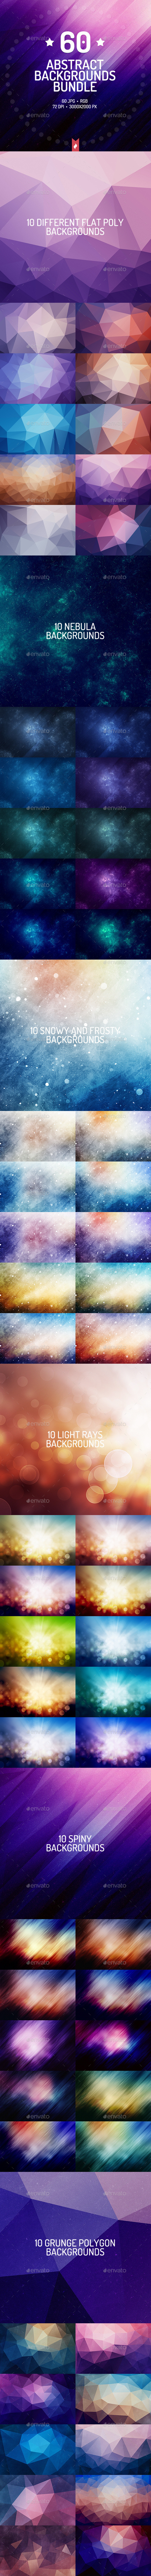 60 Abstract Backgrounds Bundle - Abstract Backgrounds